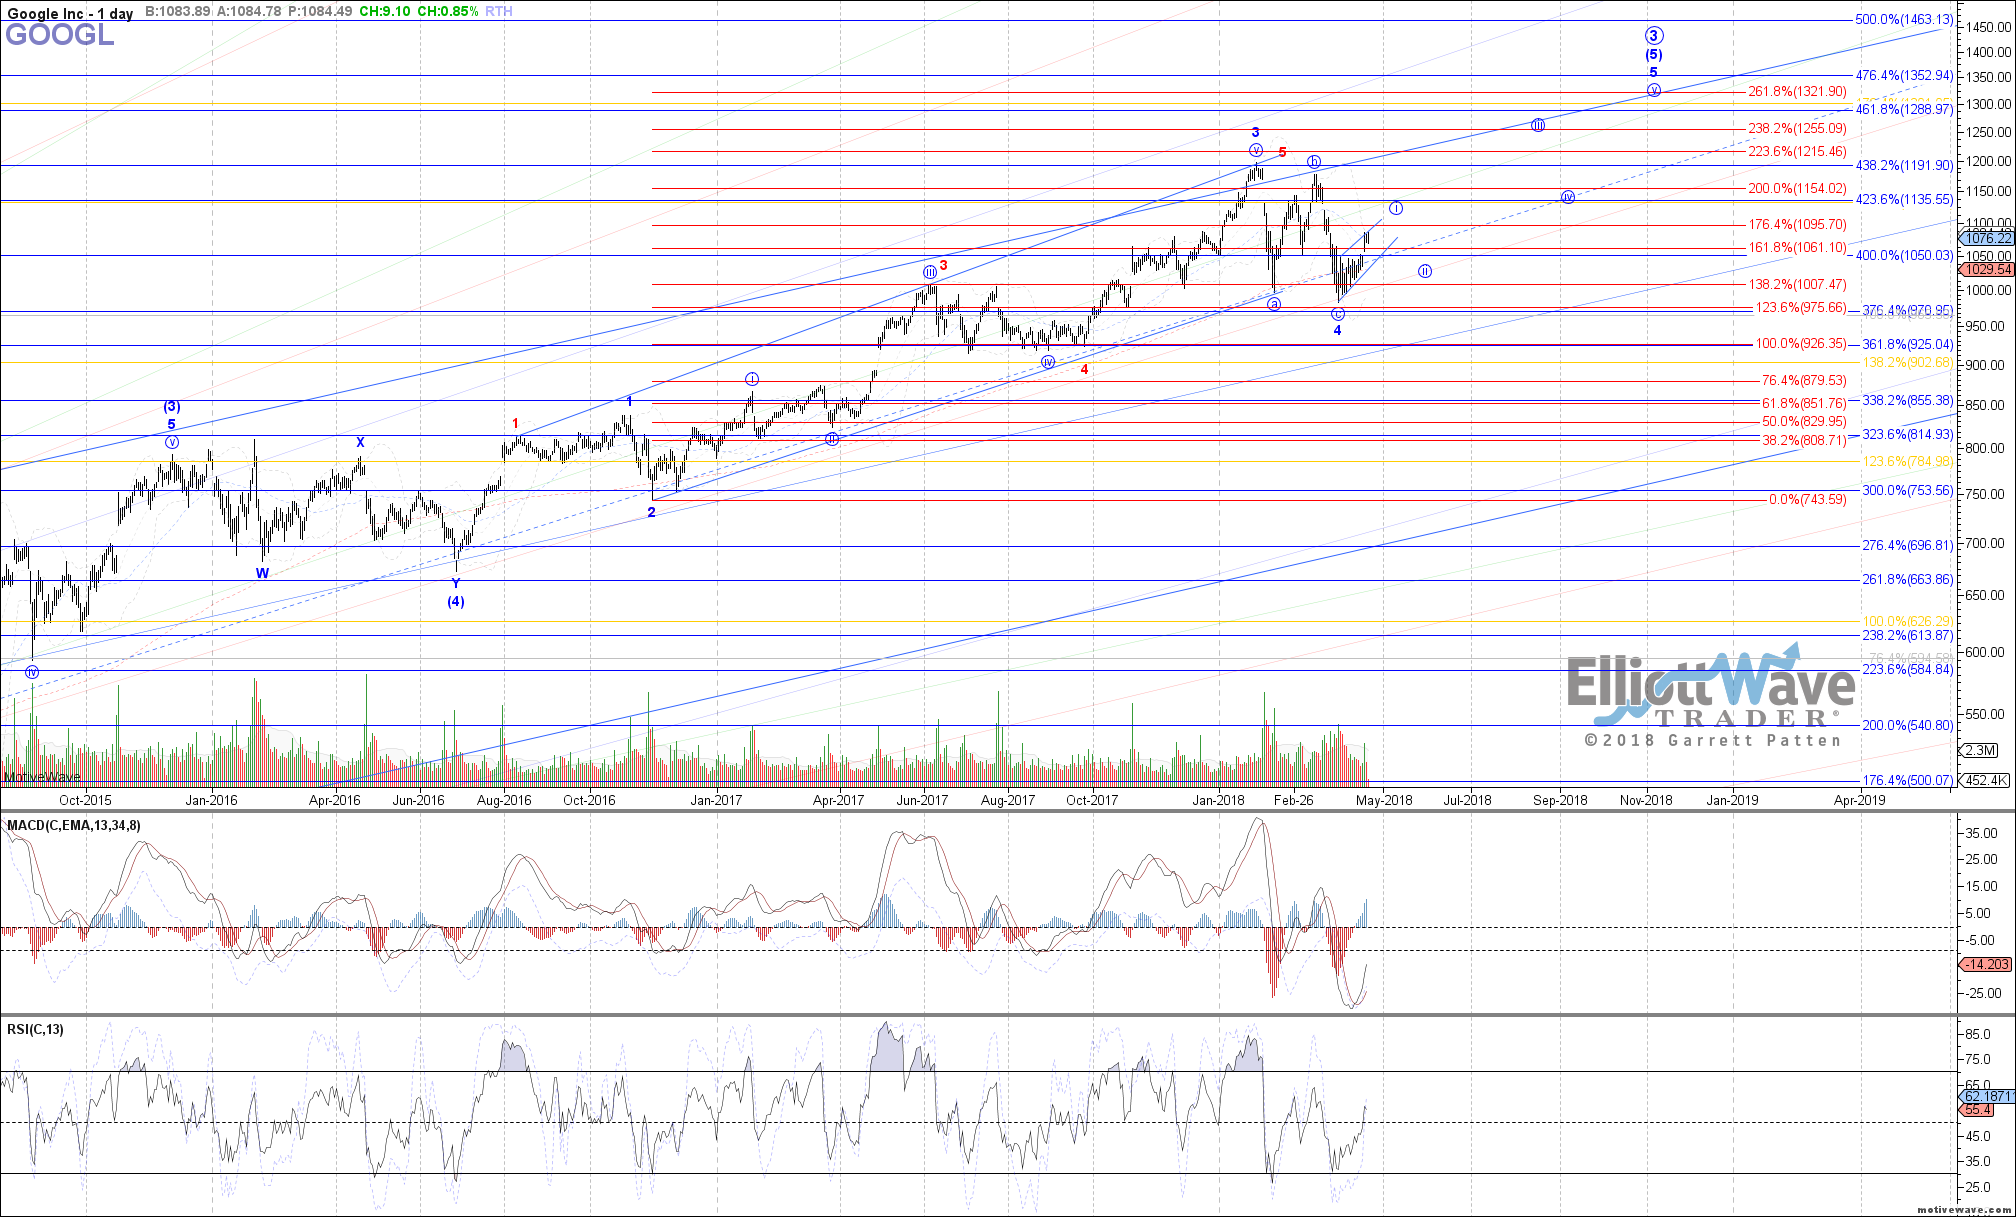 GOOGL - Primary Analysis - Apr-19 0944 AM (1 day)